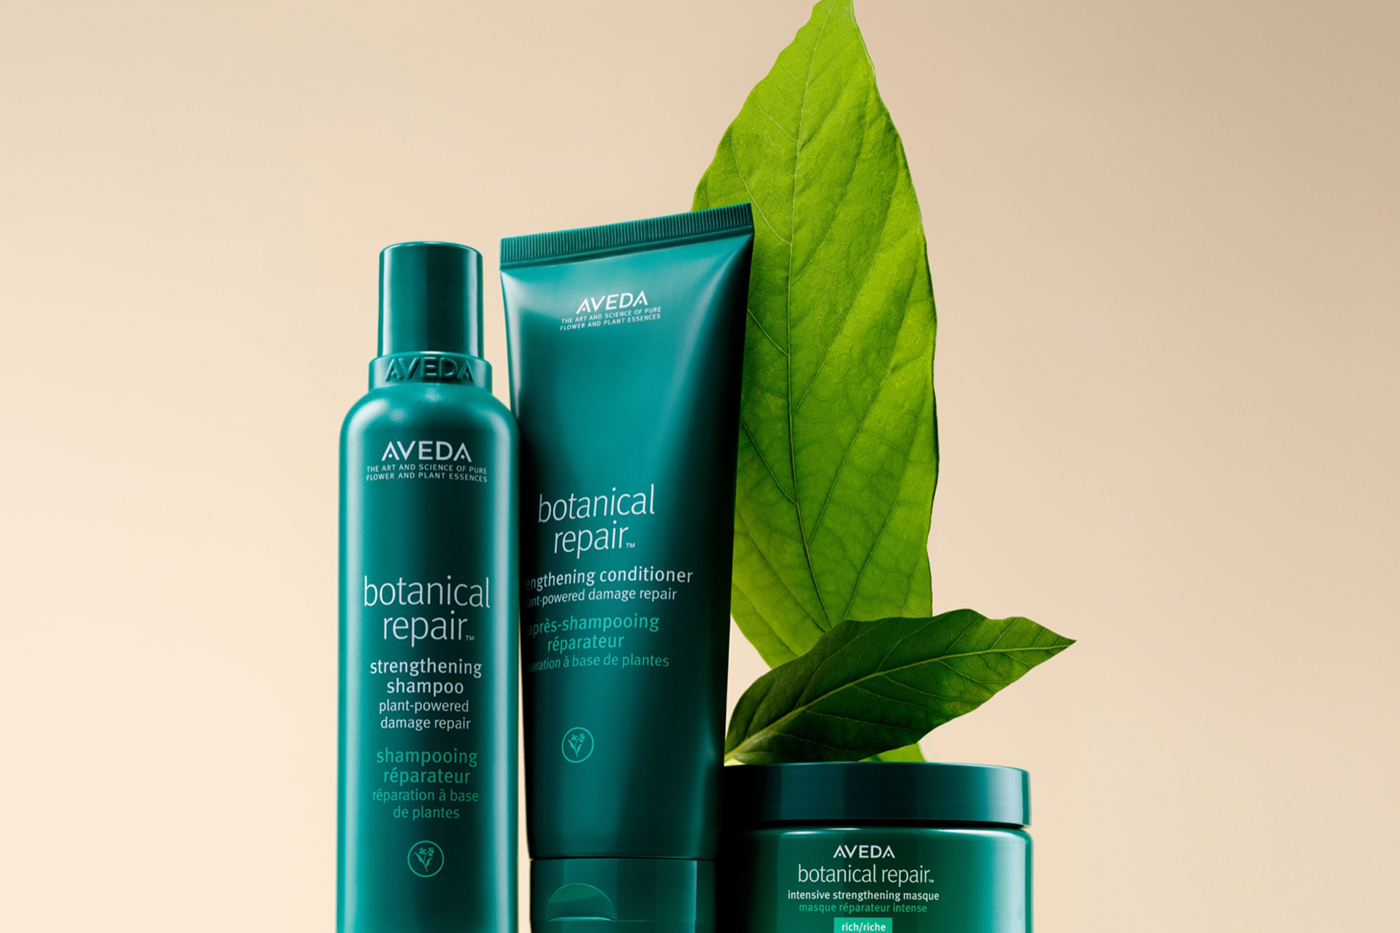 Aveda becomes completely vegan (News)